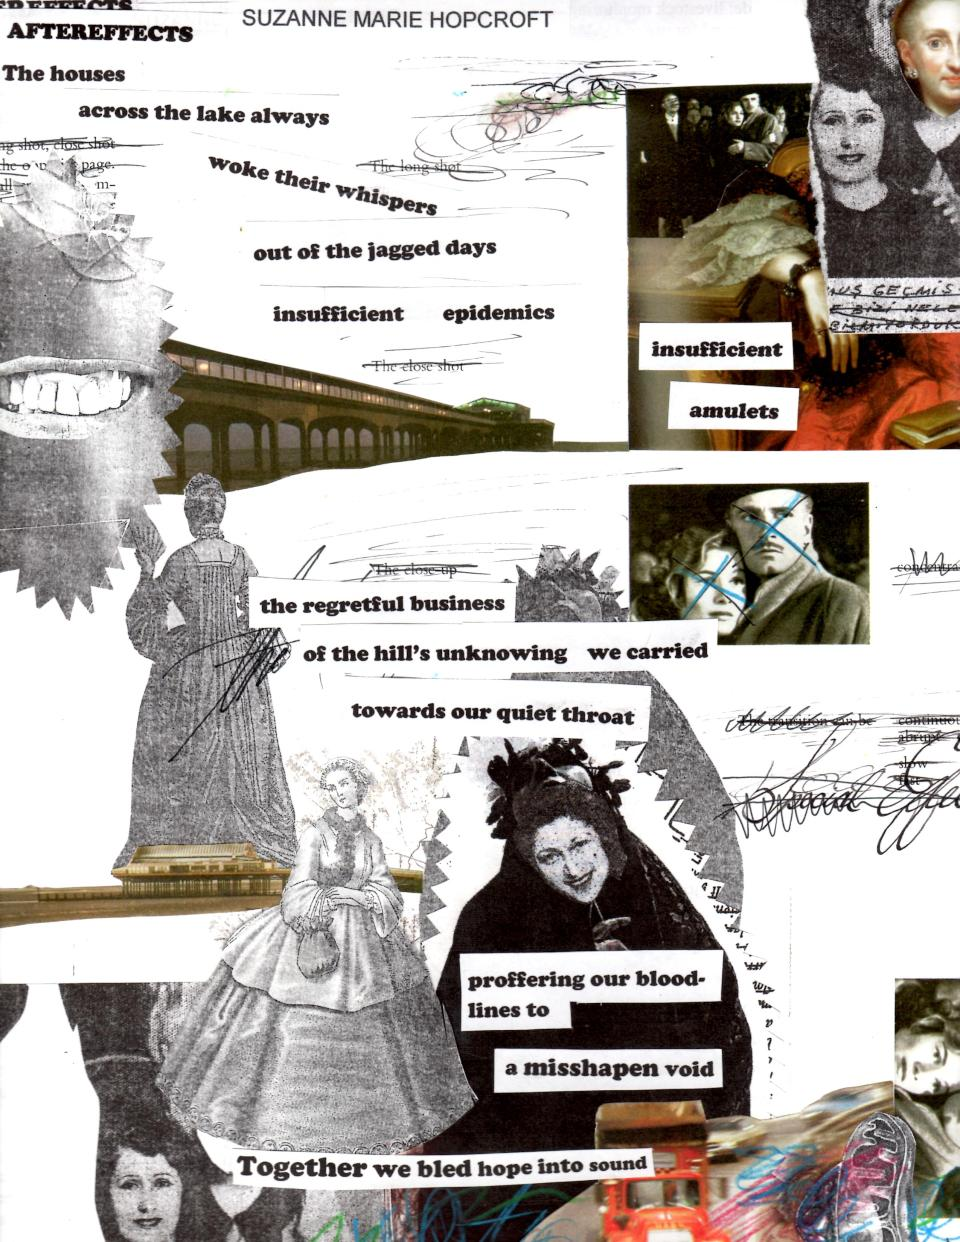 SUZANNE MARIE HOPCROFT'S 'AFTEREFFECTS' STARS IN JOSEPH MULHOLLAND'S COLLAGE EXTRAVAGANZA